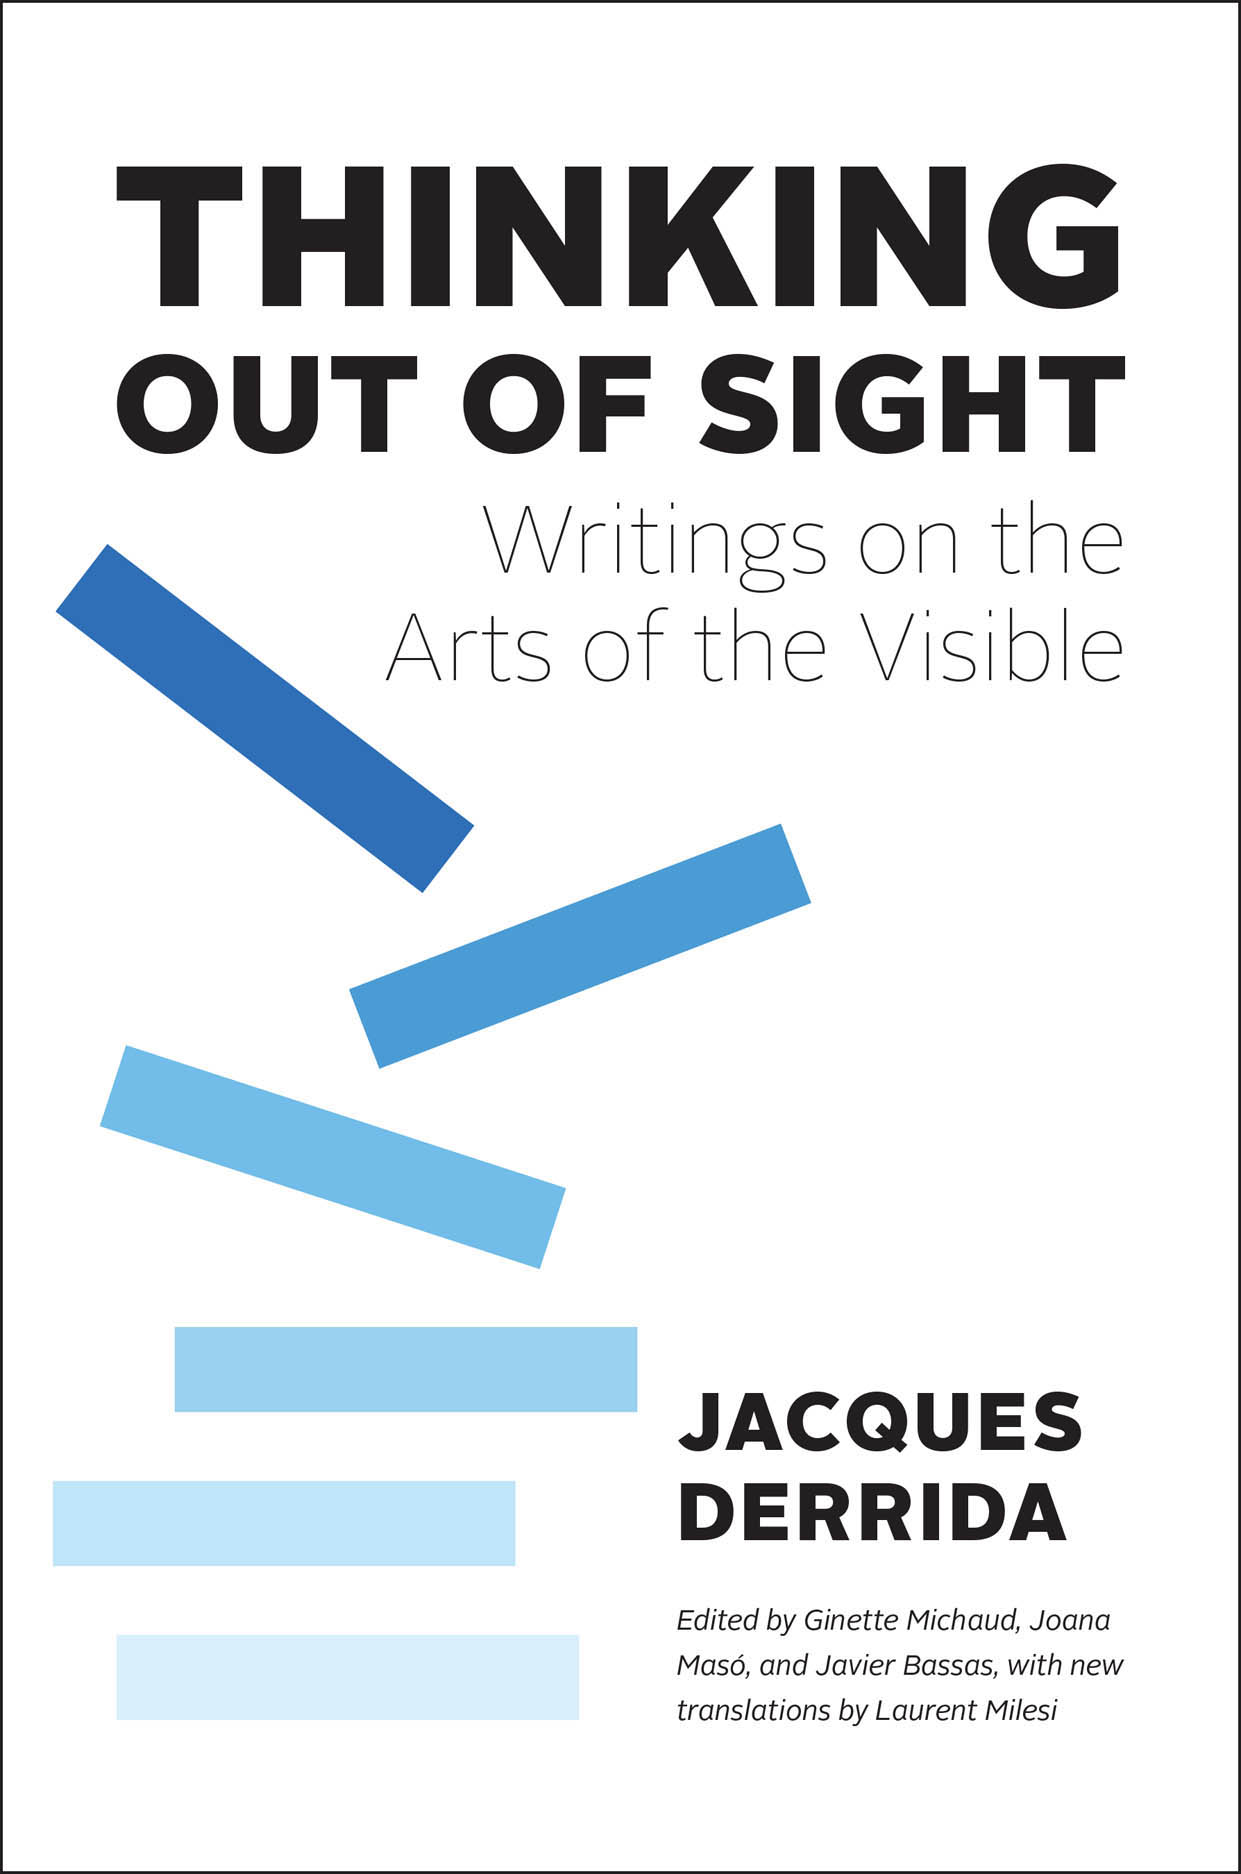 Thinking Out of Sight: Writings on the Arts of the Visible